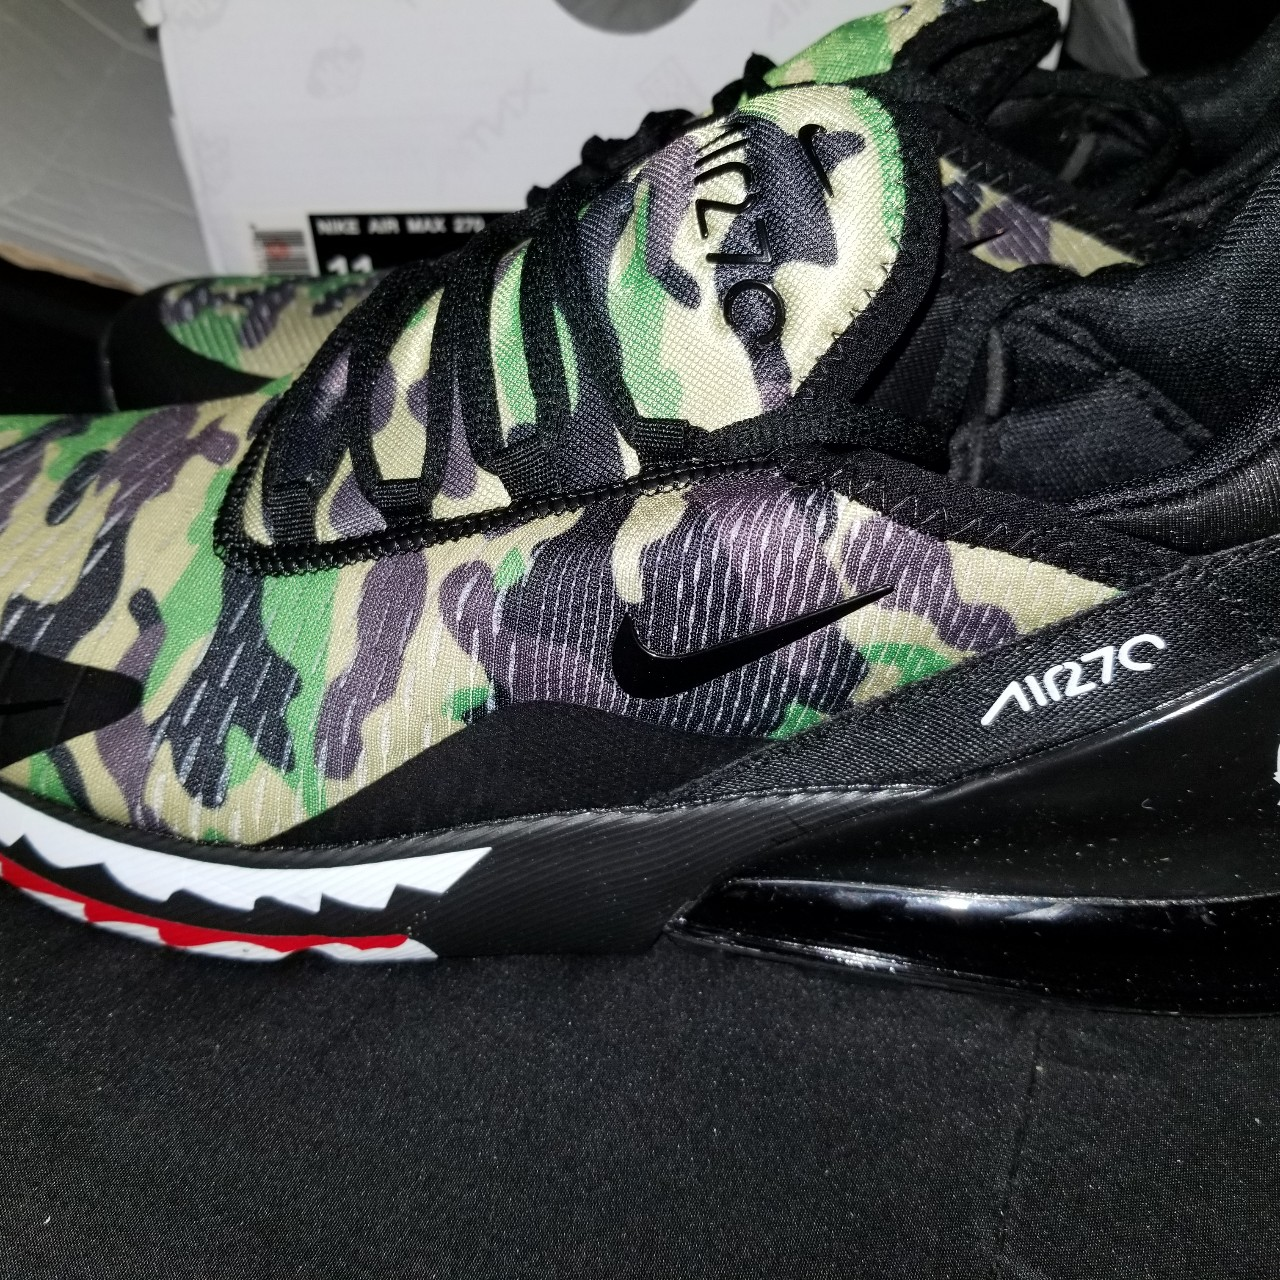 quality design 4fe00 806e7 Nike air max 270 bape Available in sizes 8-13 - Depop